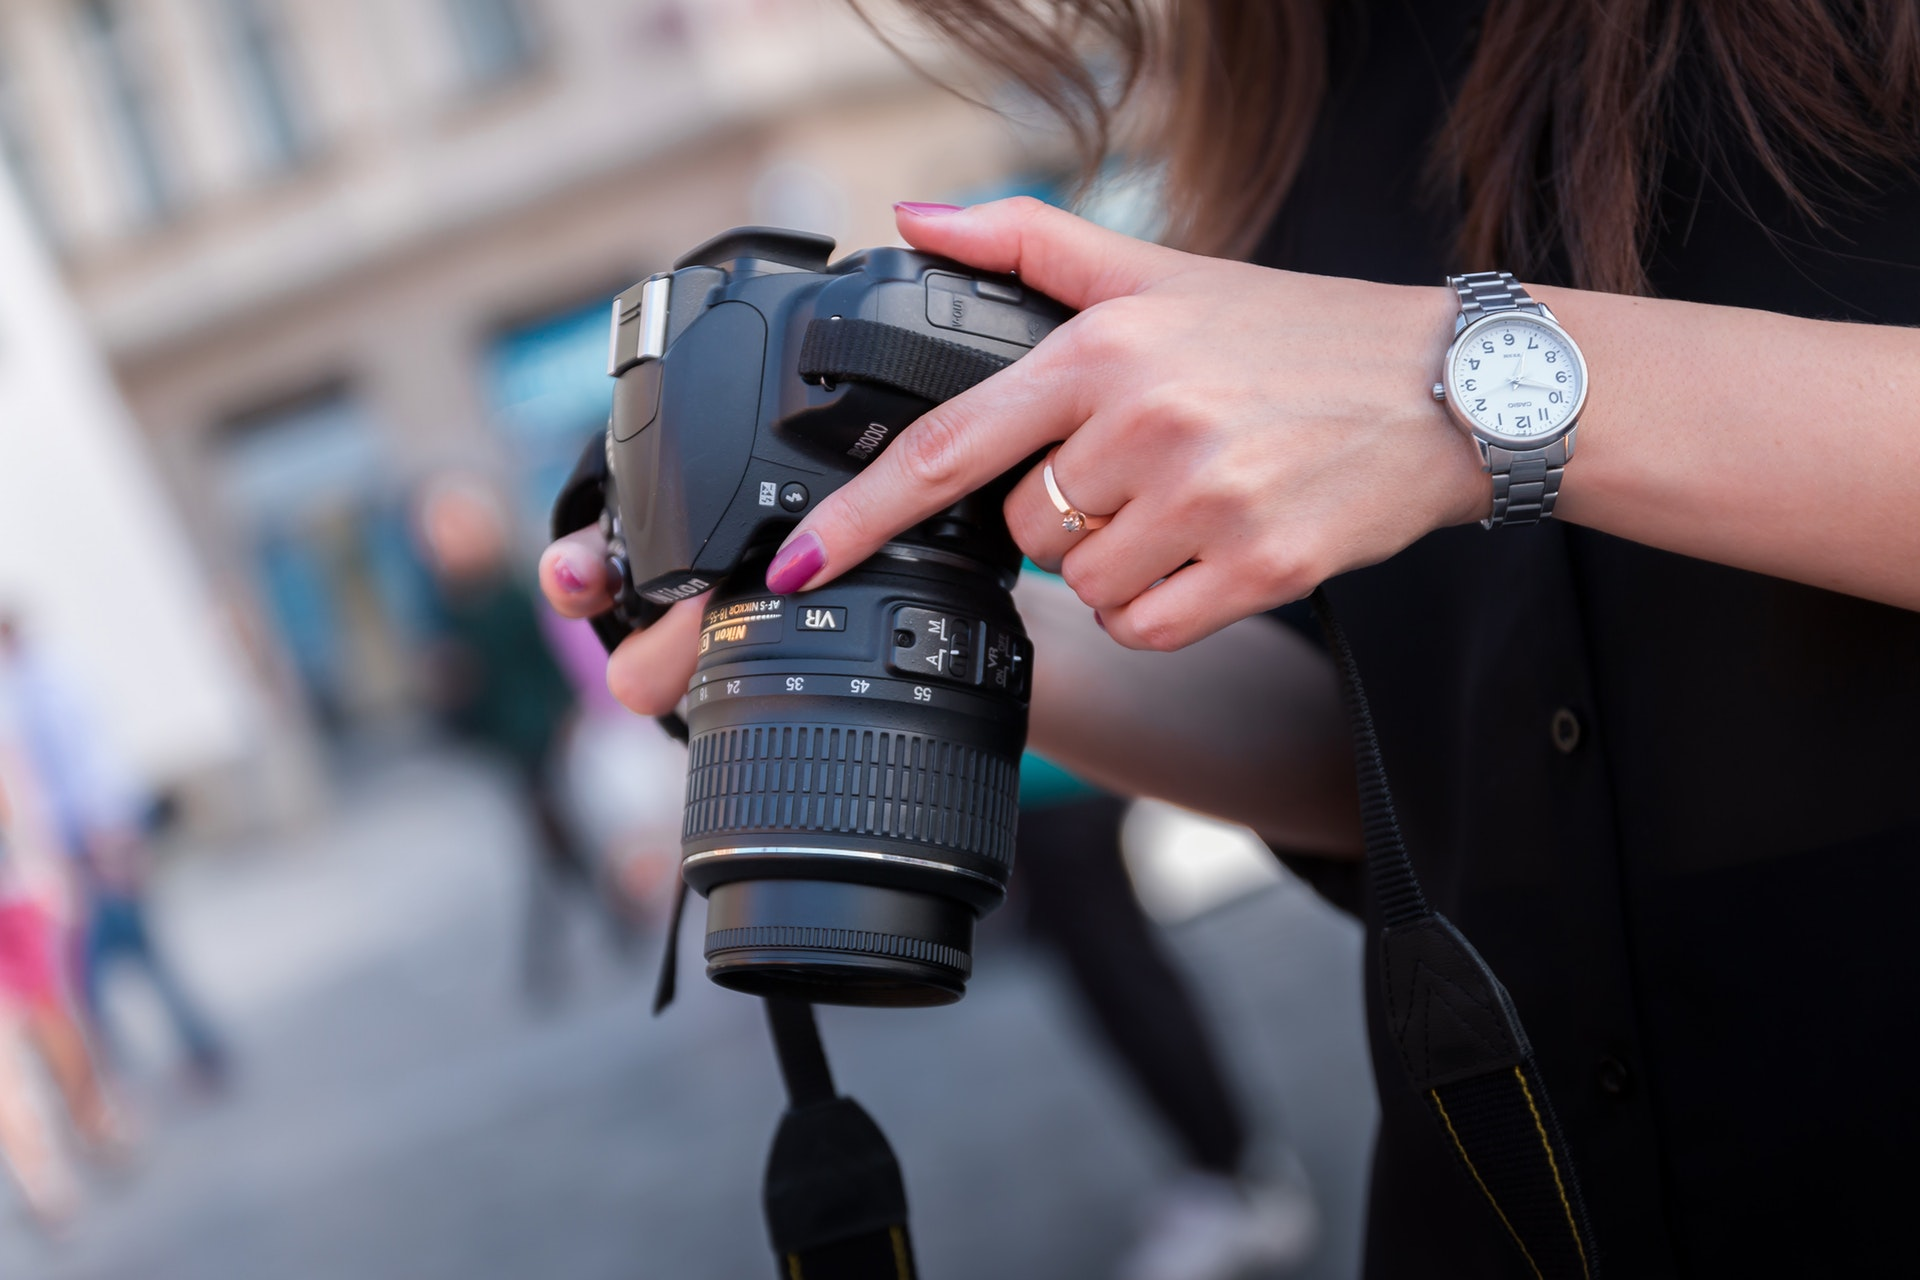 White Balance In Camera: Everything You Need To Know